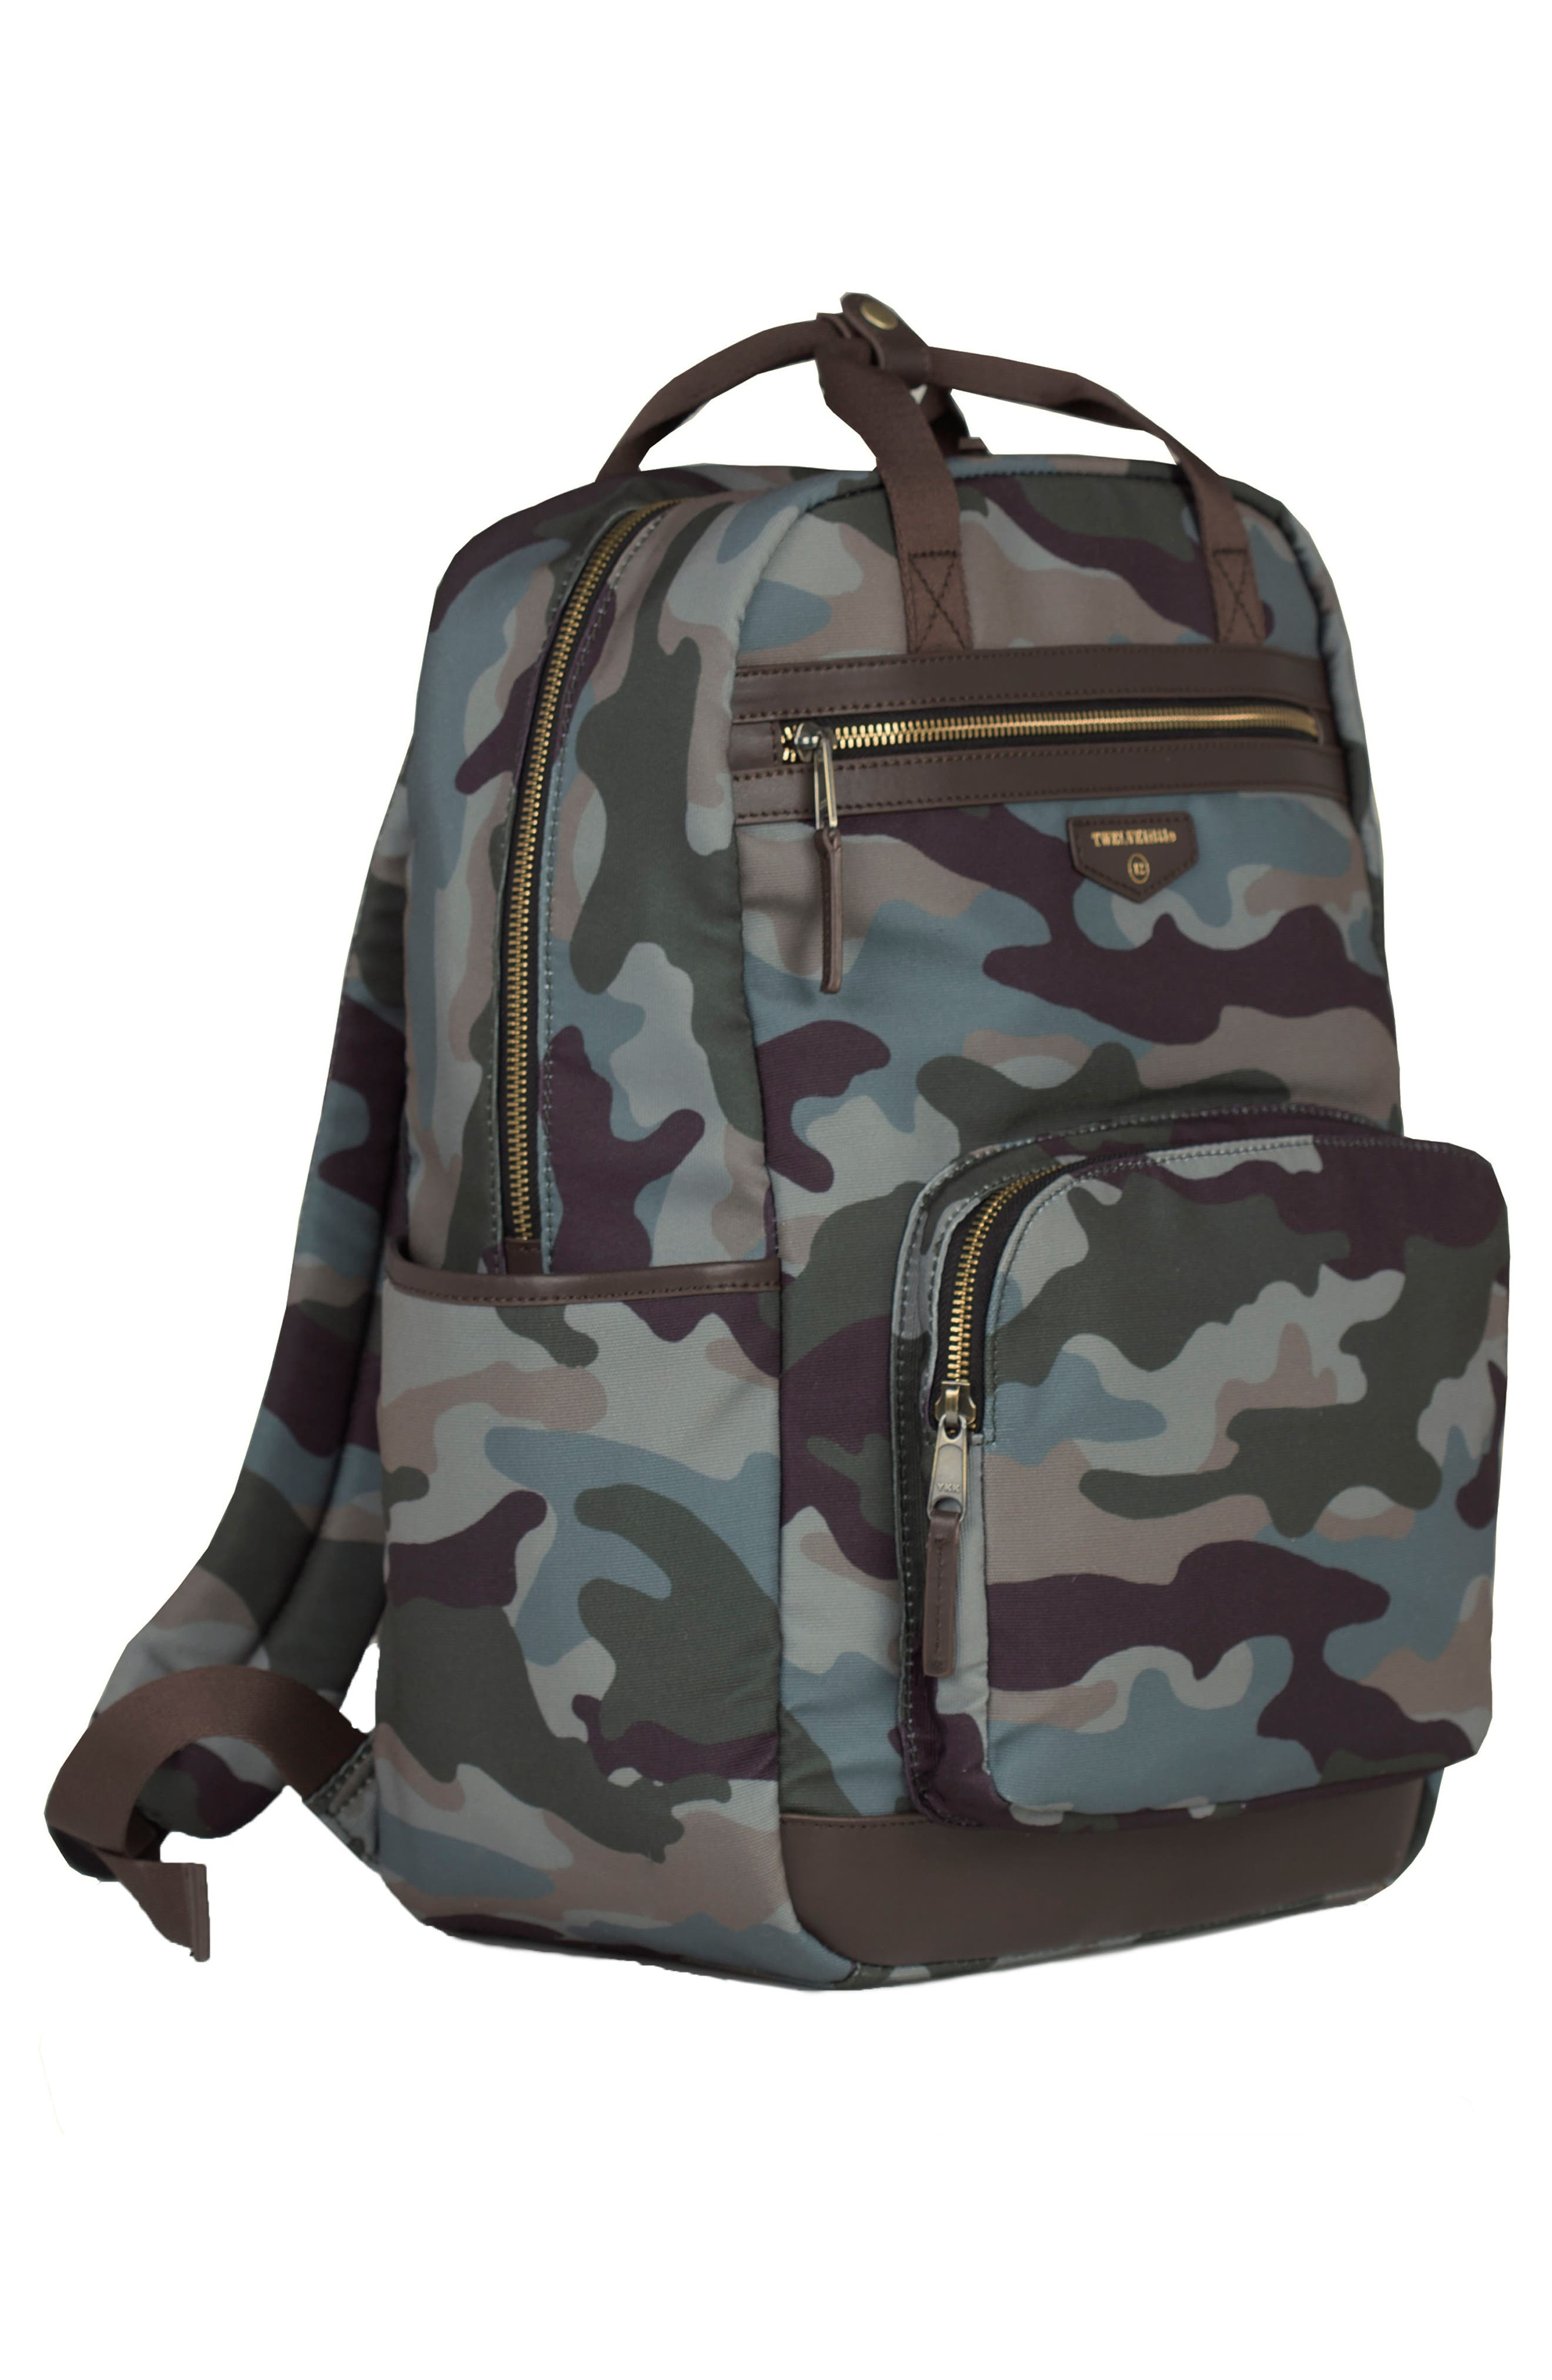 'Courage' Unisex Backpack Diaper Bag,                             Alternate thumbnail 3, color,                             Camouflage Print